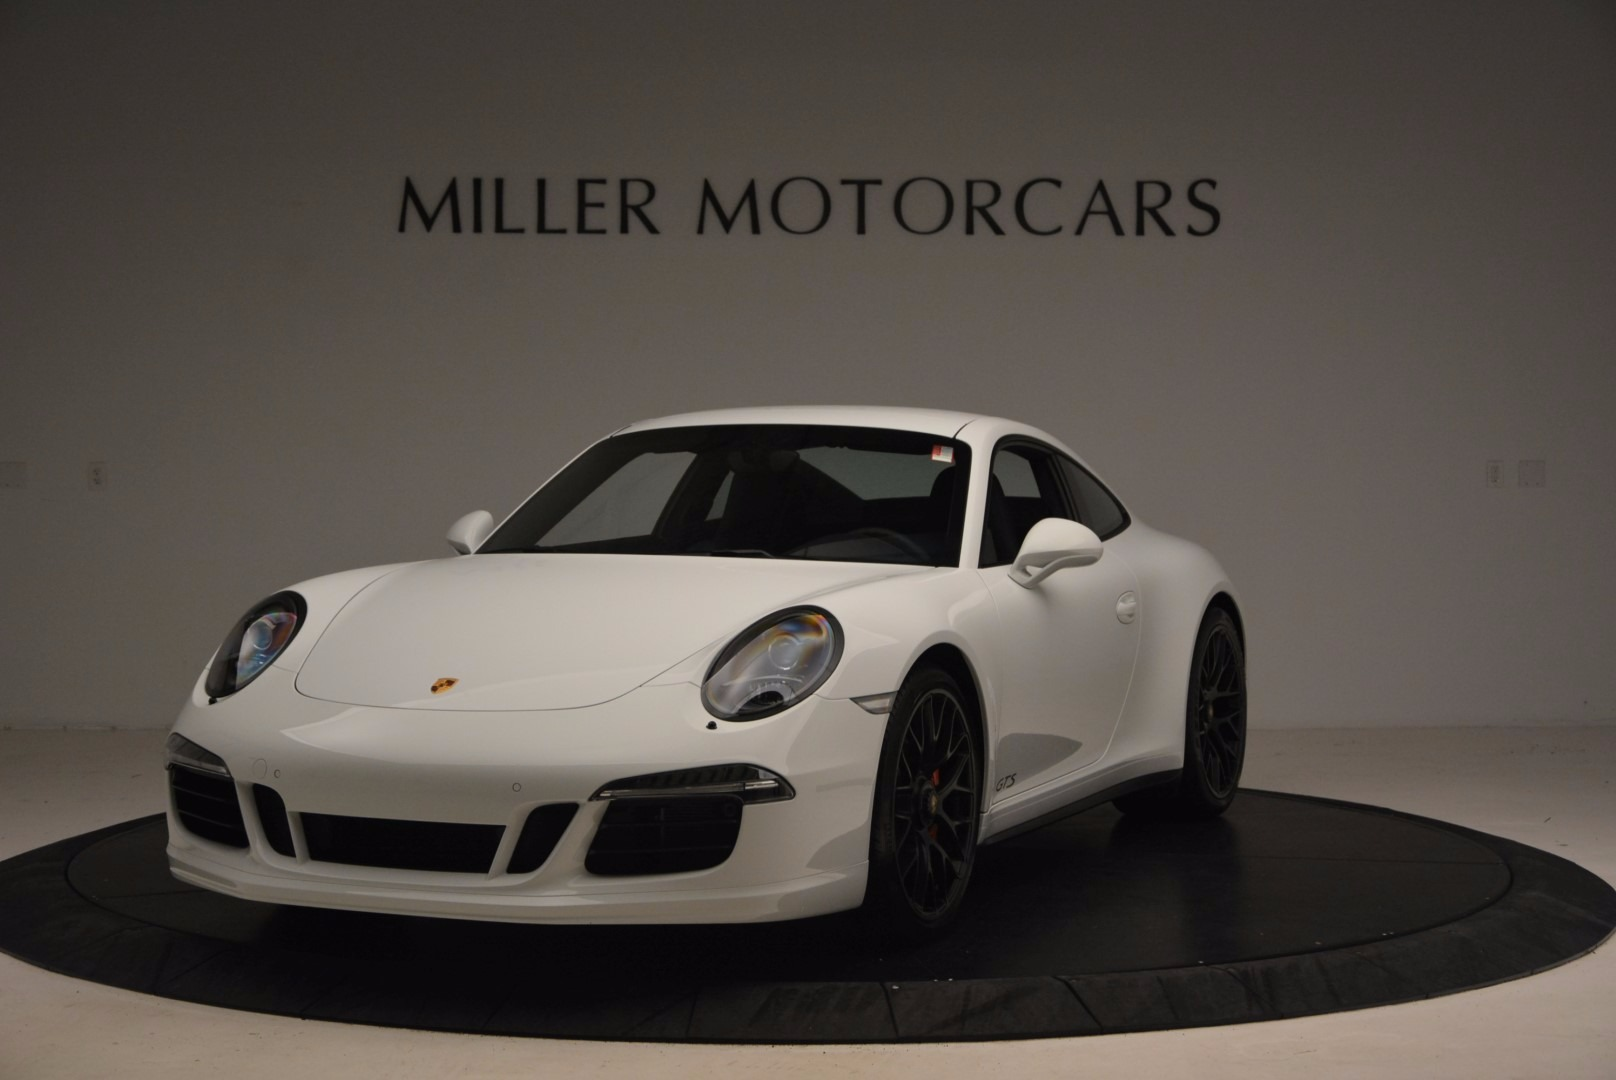 Used 2015 Porsche 911 Carrera GTS for sale Sold at Aston Martin of Greenwich in Greenwich CT 06830 1